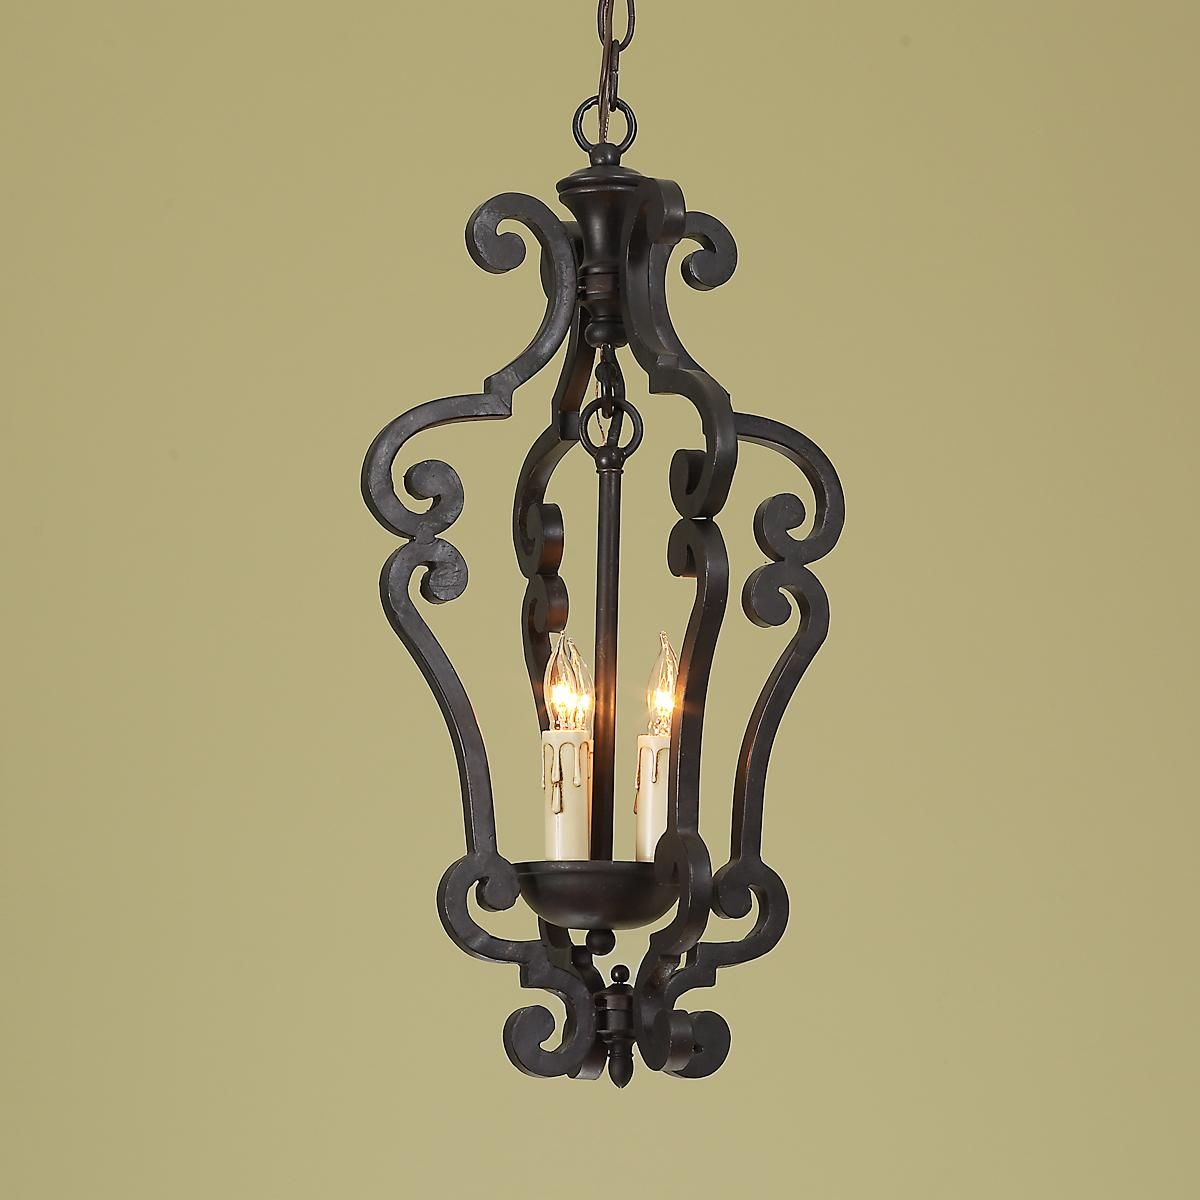 Black Wrought Iron Kitchen Light Fixtures Black Iron Scroll Lantern Small Fox Borough Hill Lighting